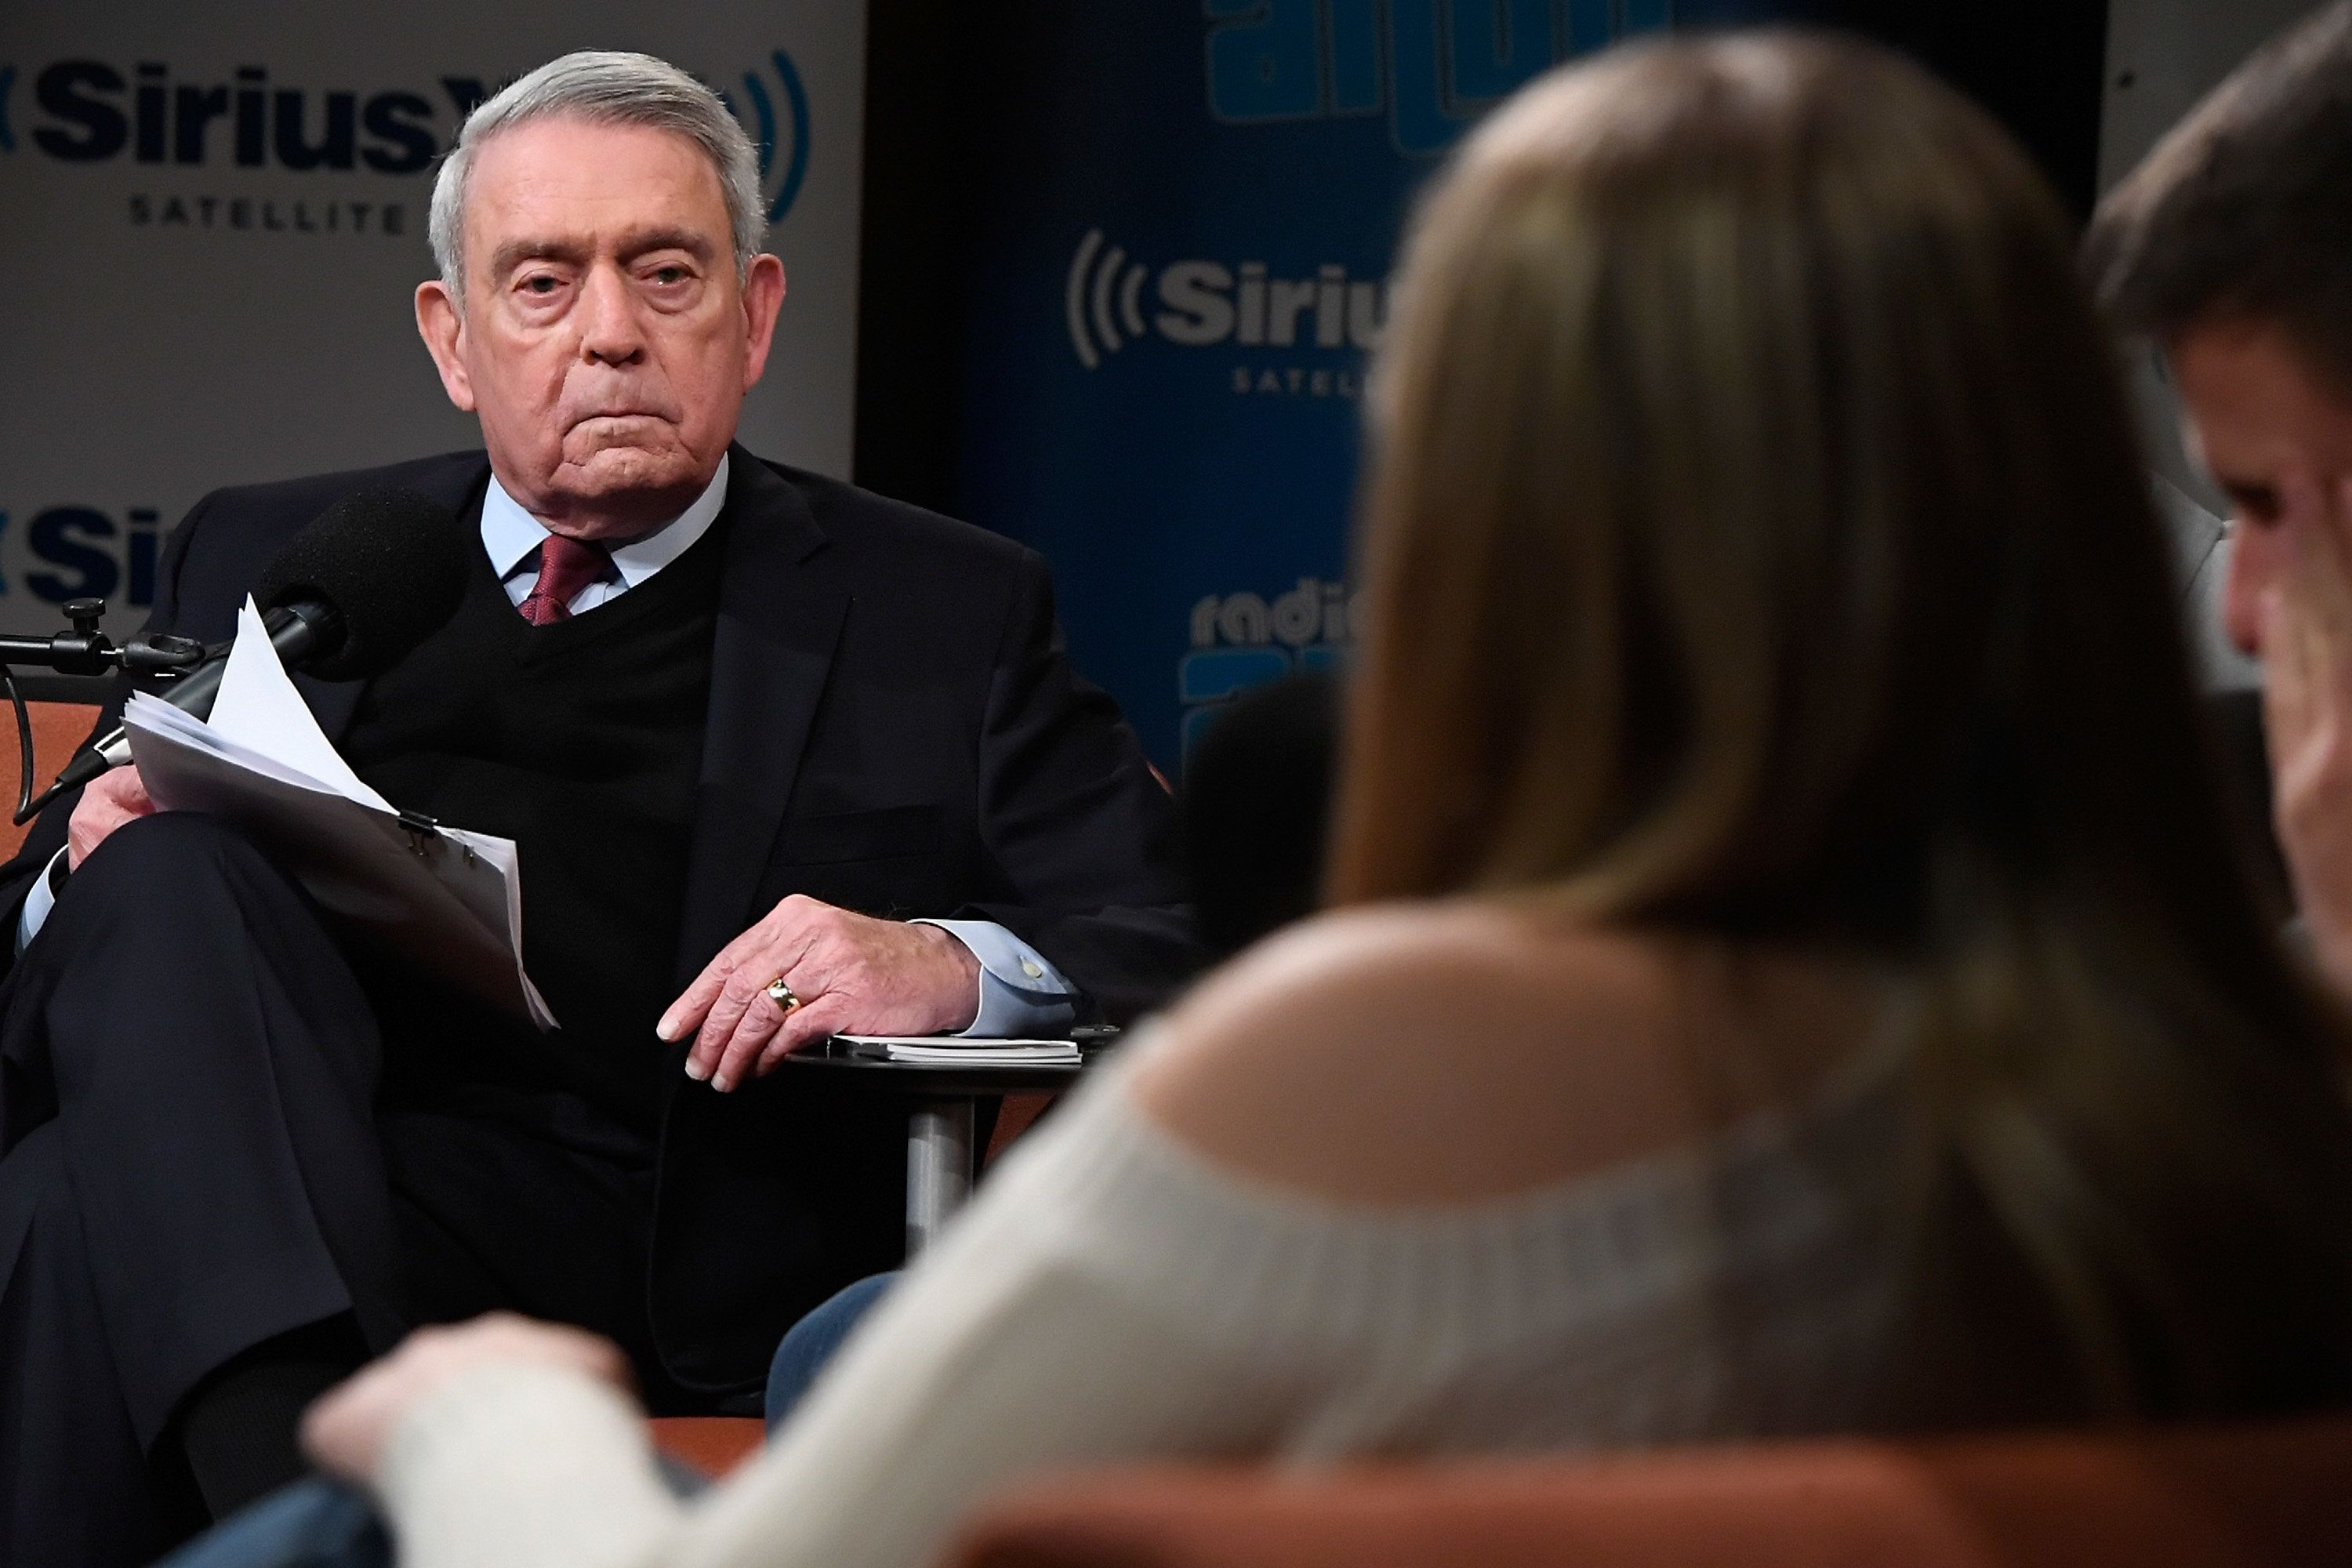 huffpost.com - Lee Moran - Dan Rather Issues Chilling Warning About Fox News And Radio Moscow